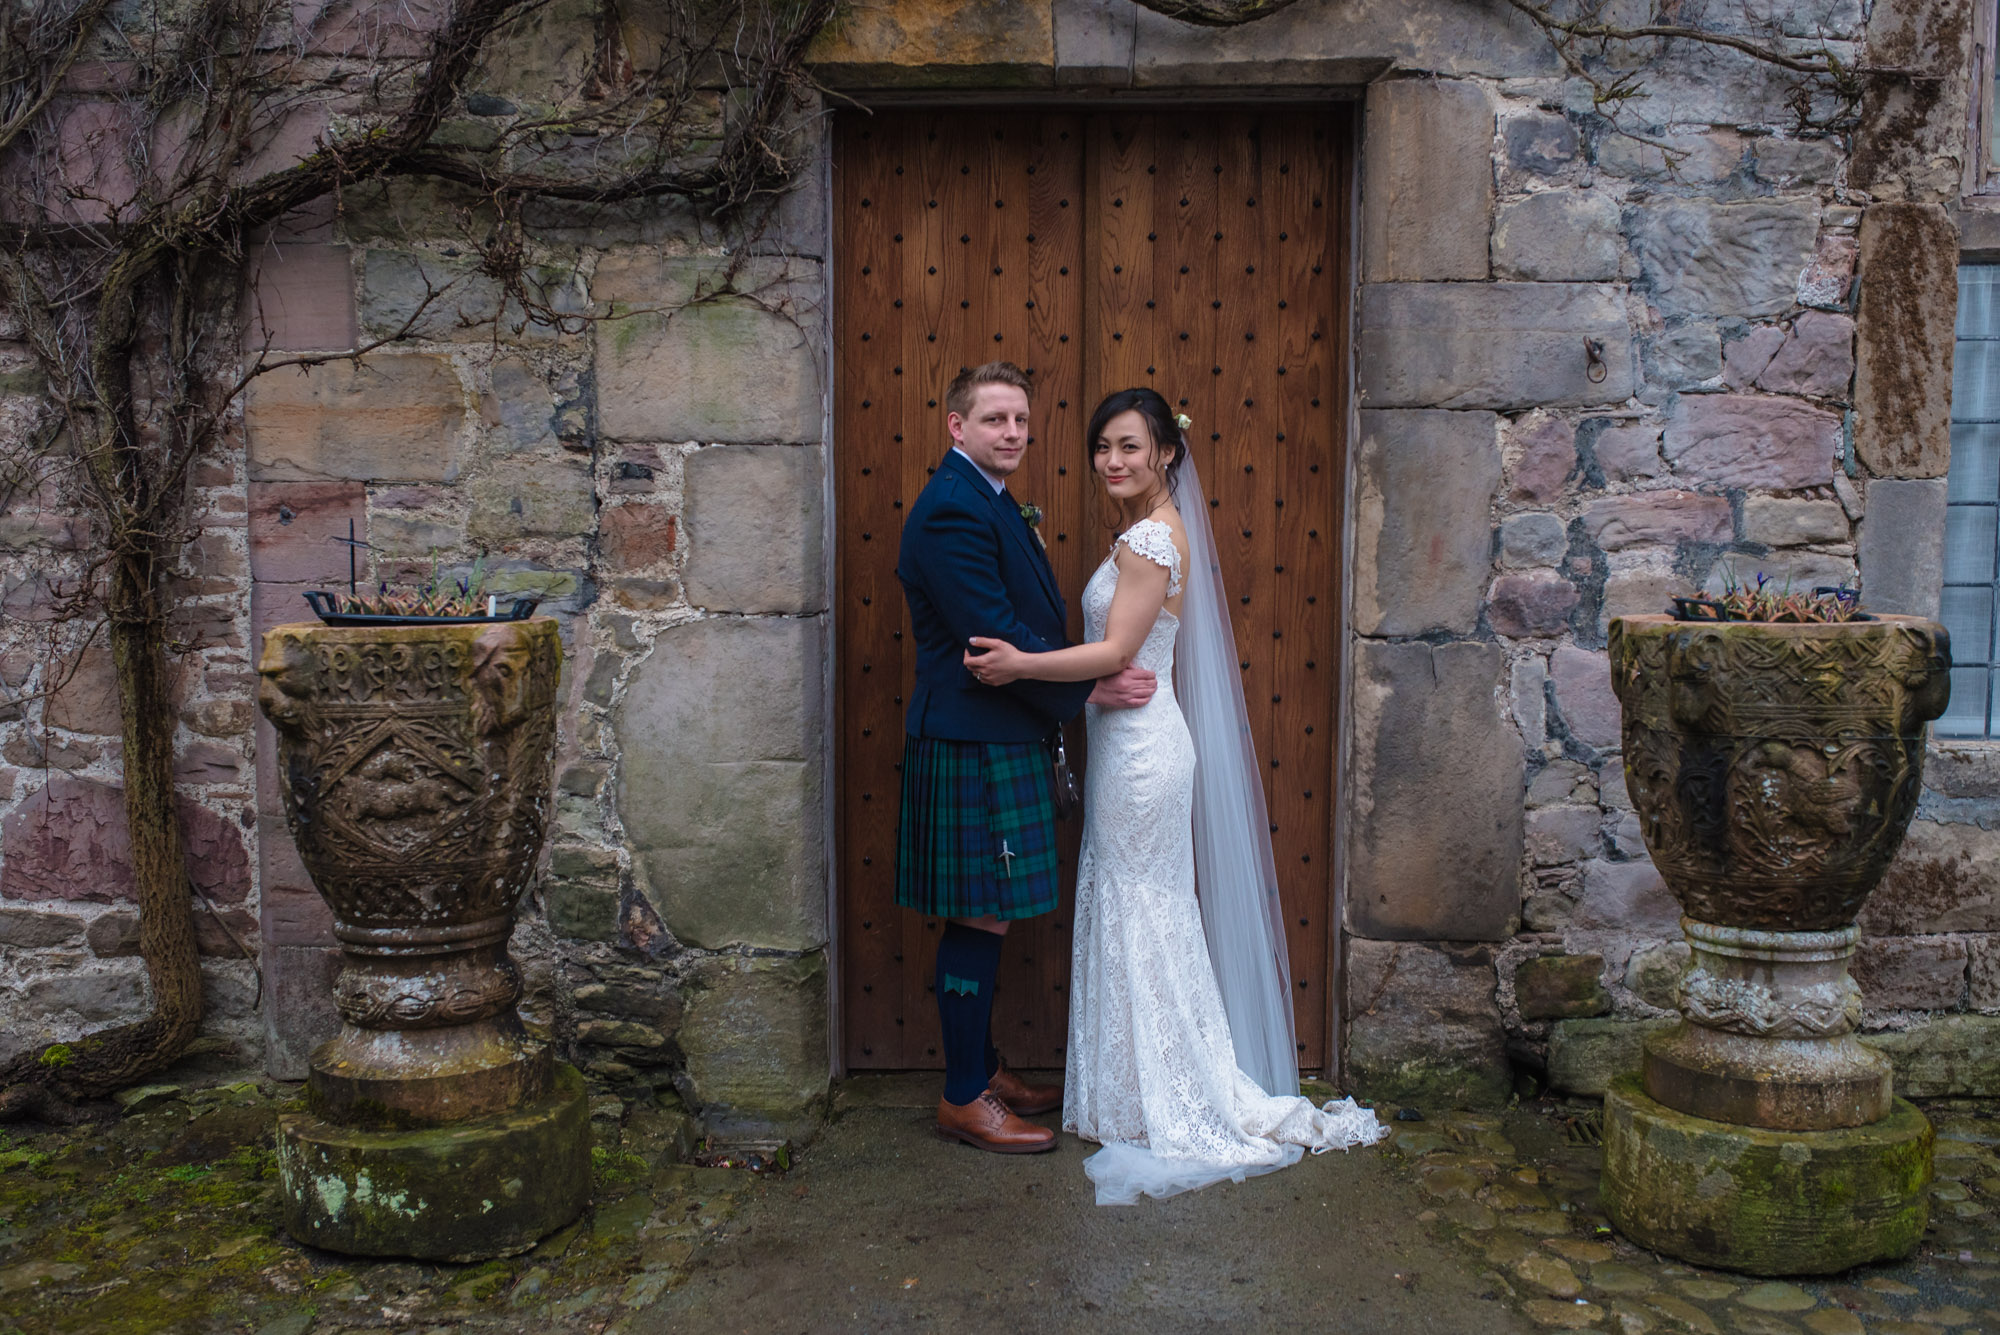 Shropshire wedding photographer at Askham Hall in `Cumbria.